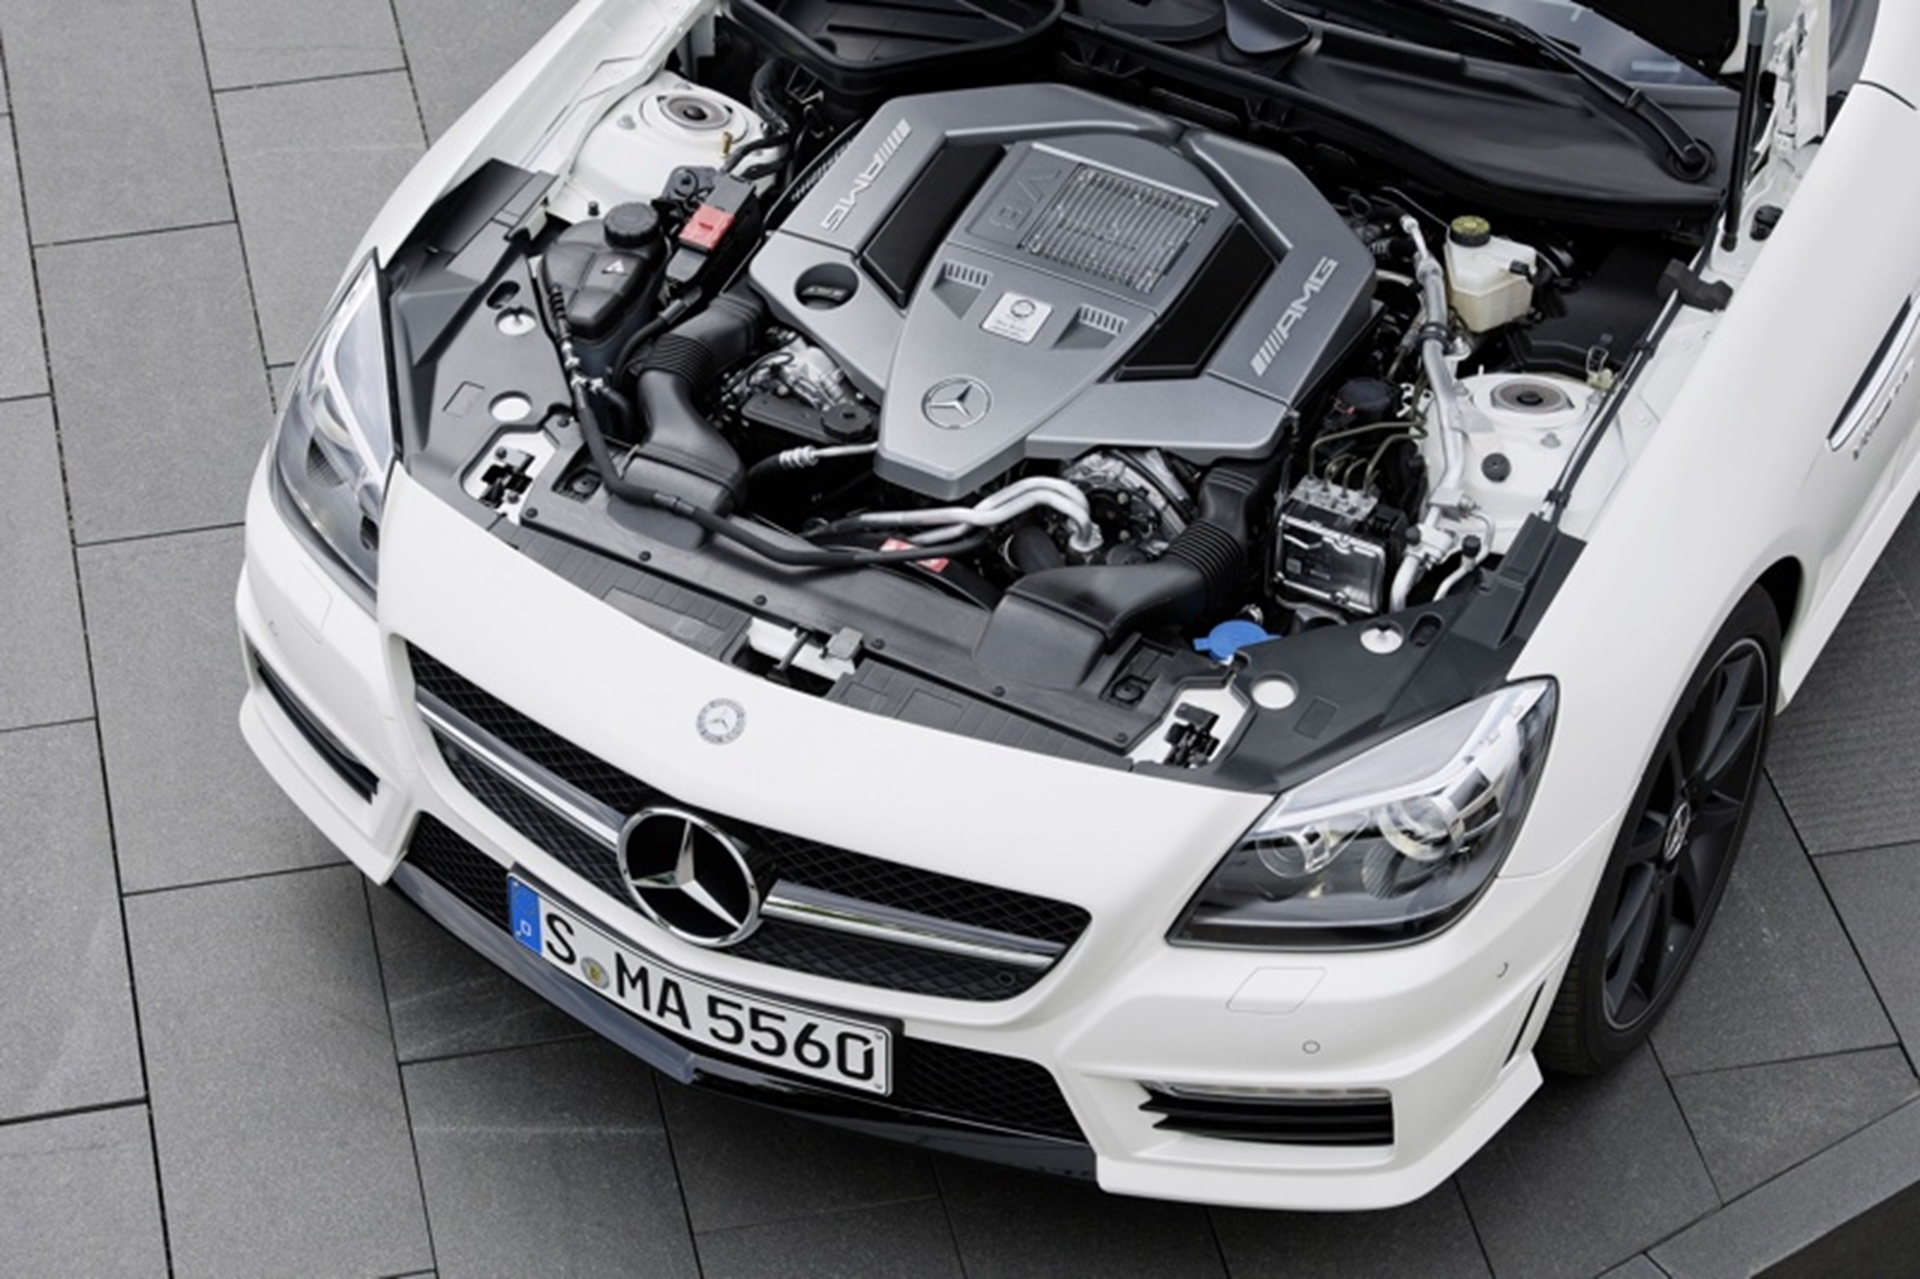 Mercedes-Benz SLK 55 AMG Engine